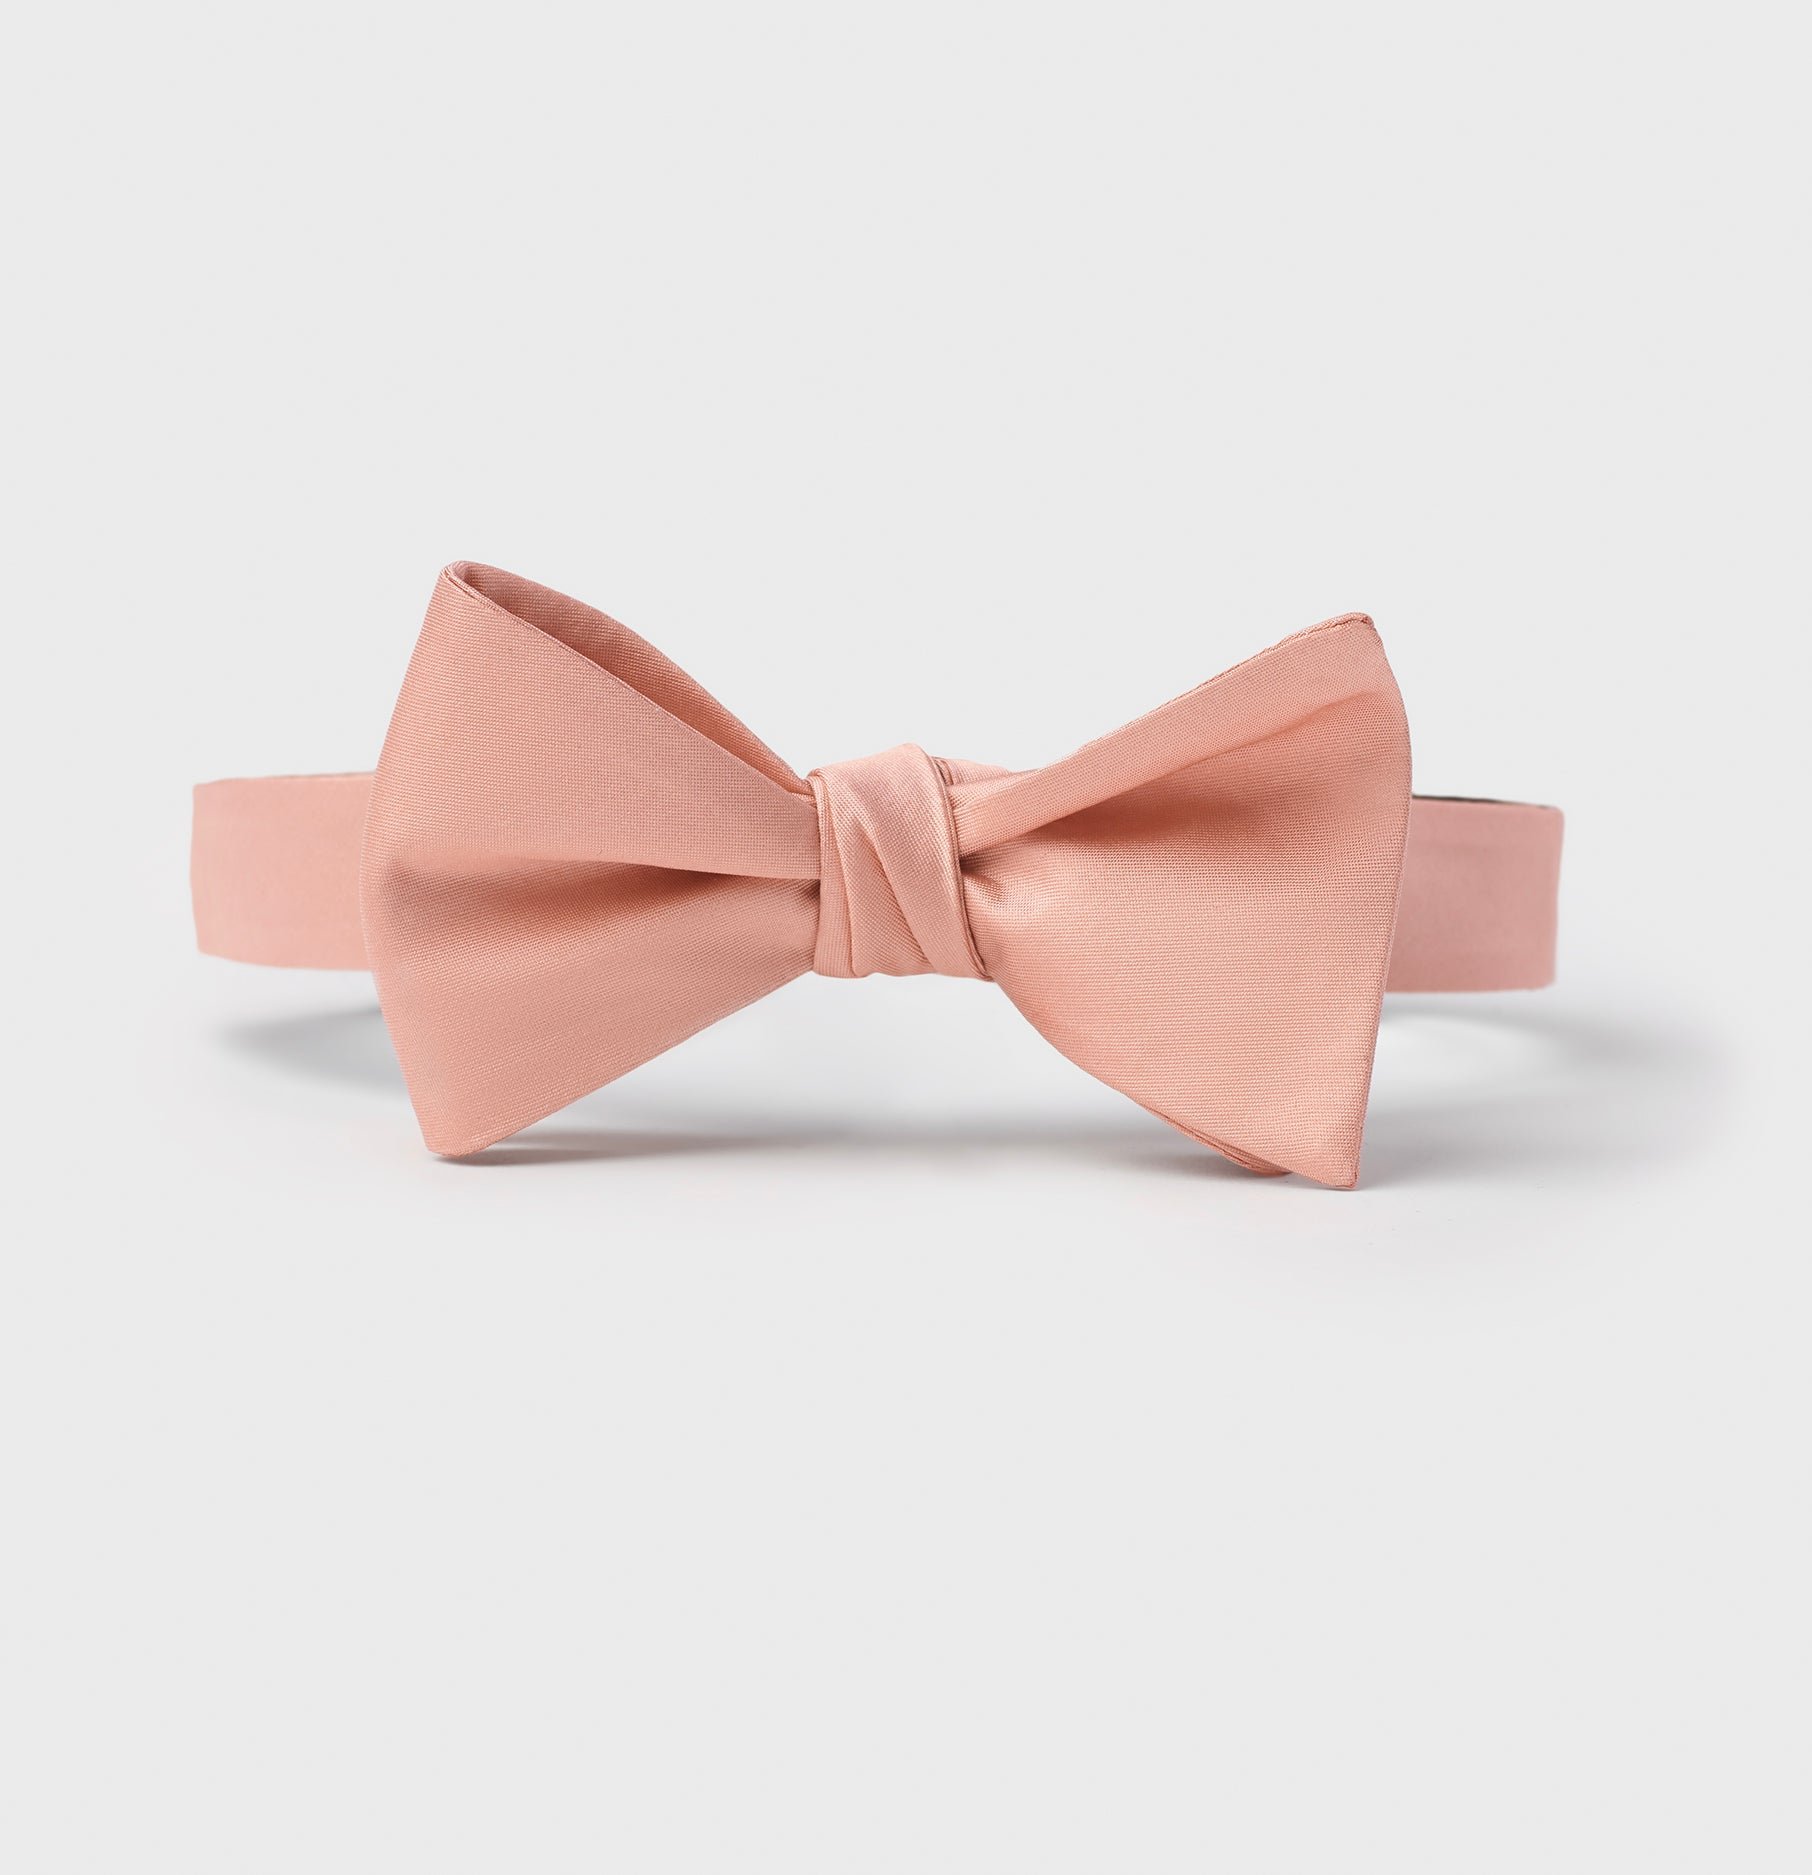 d2be5f0d1dcc Deep Peach Butterfly Bow Tie | The Black Tux